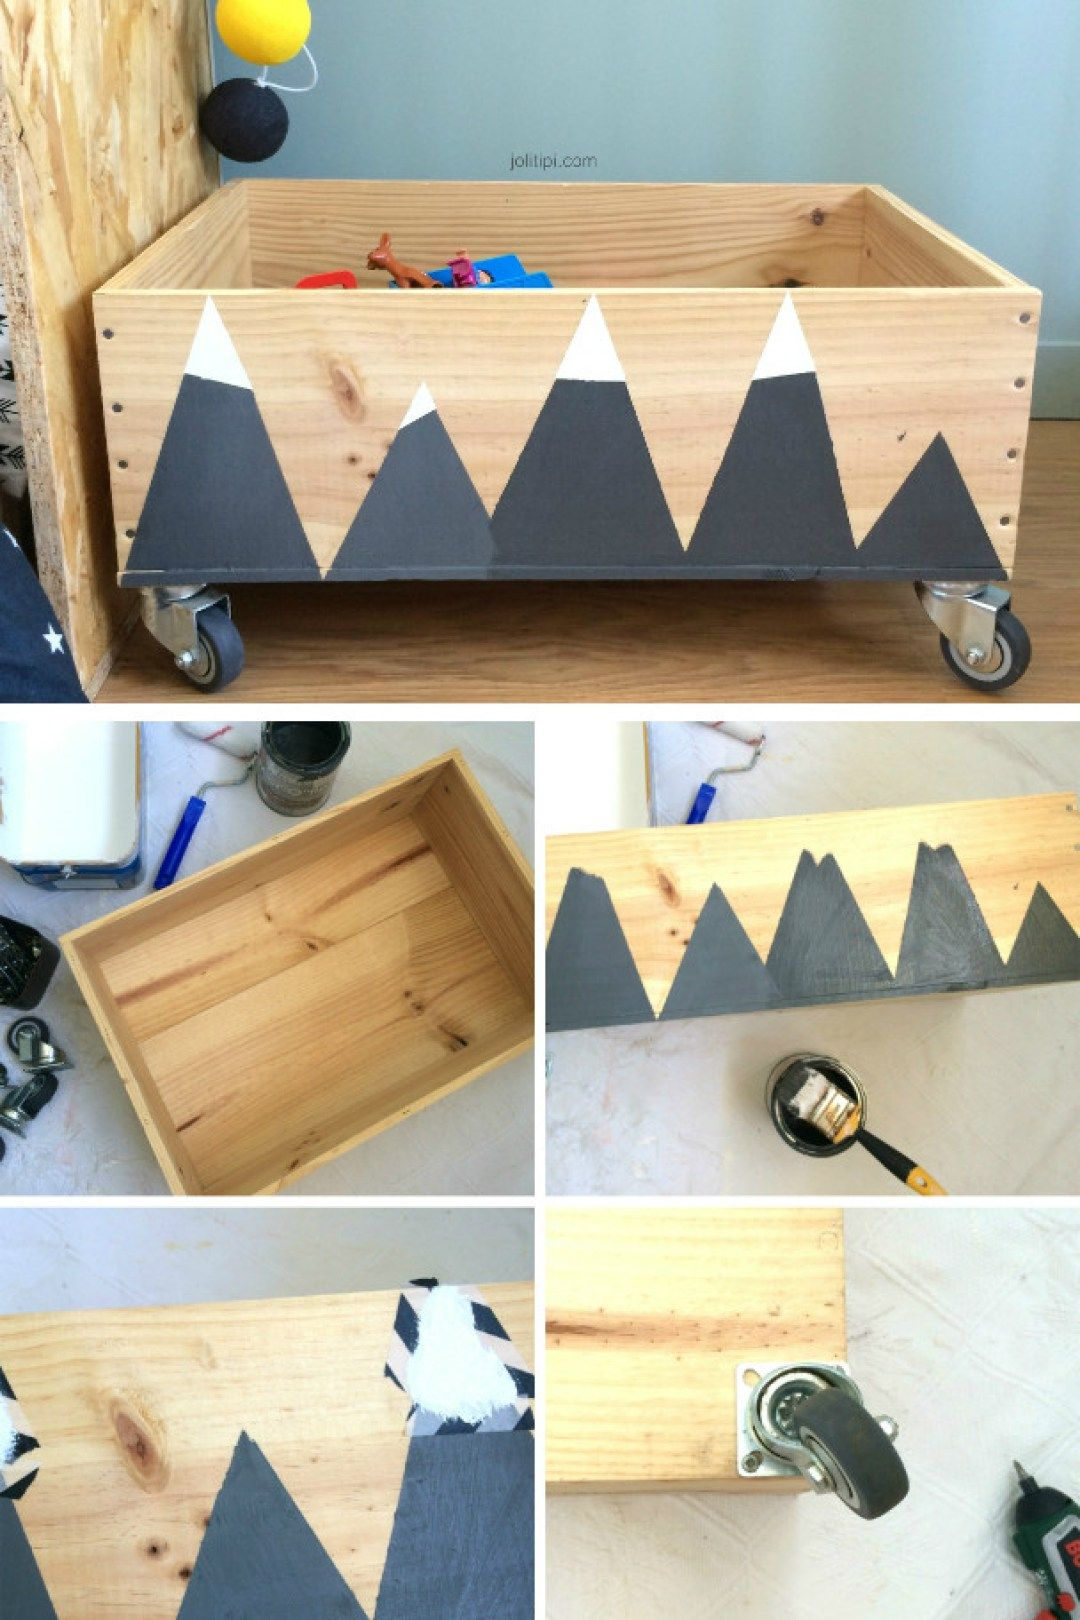 diy caisse jouets en bois montagnes enneig es jolitipi. Black Bedroom Furniture Sets. Home Design Ideas